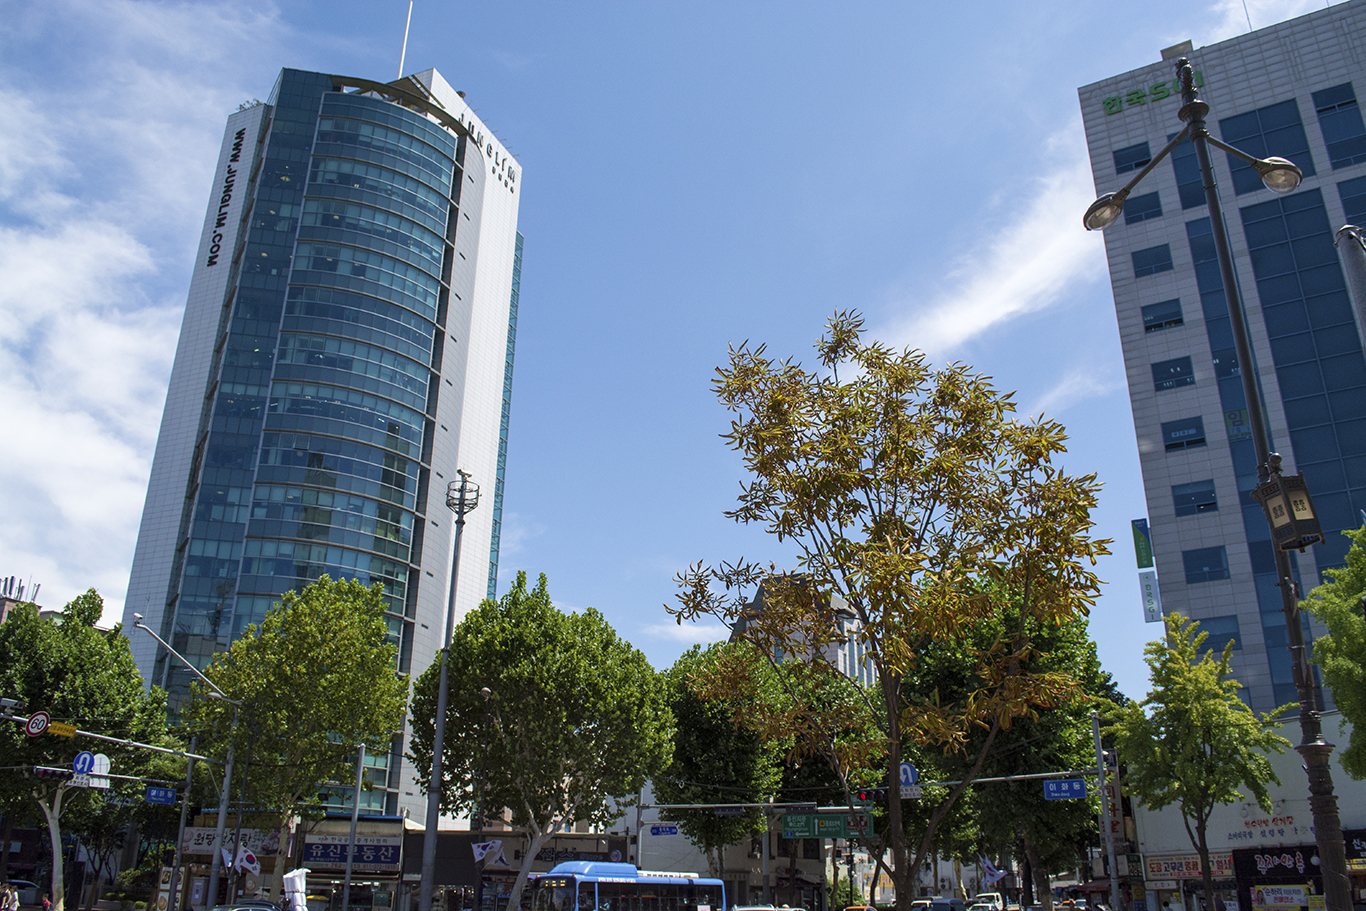 The JUNGLIM Architecture tower (left) in Daehangno, Seoul.(CHRISTOPHER CAMERON/THE STATESMAN)